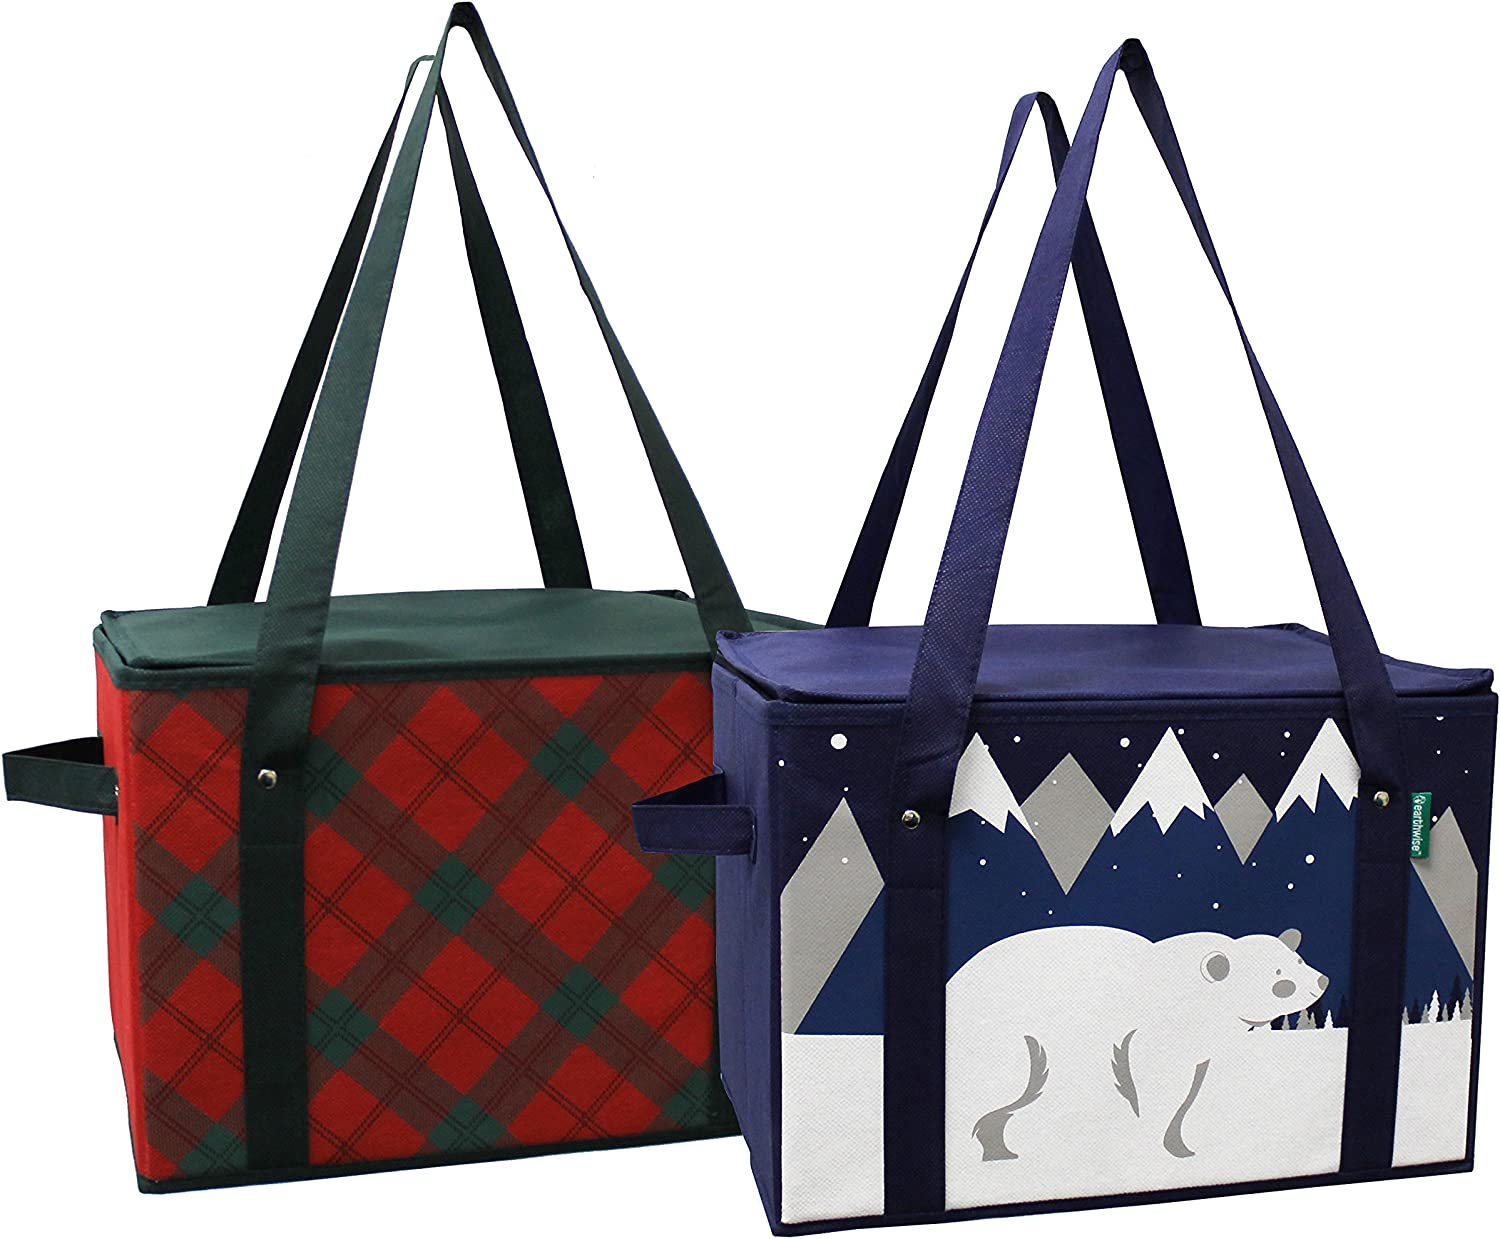 Earthwise Insulated Reusable Grocery Bag Shopping Box with Reinforced Bottom Panel and Zipper Top Lid with Extra Side Handles for Easy Lifting Xmas Christmas (Set of 2) (Plaid/Polar Bear)